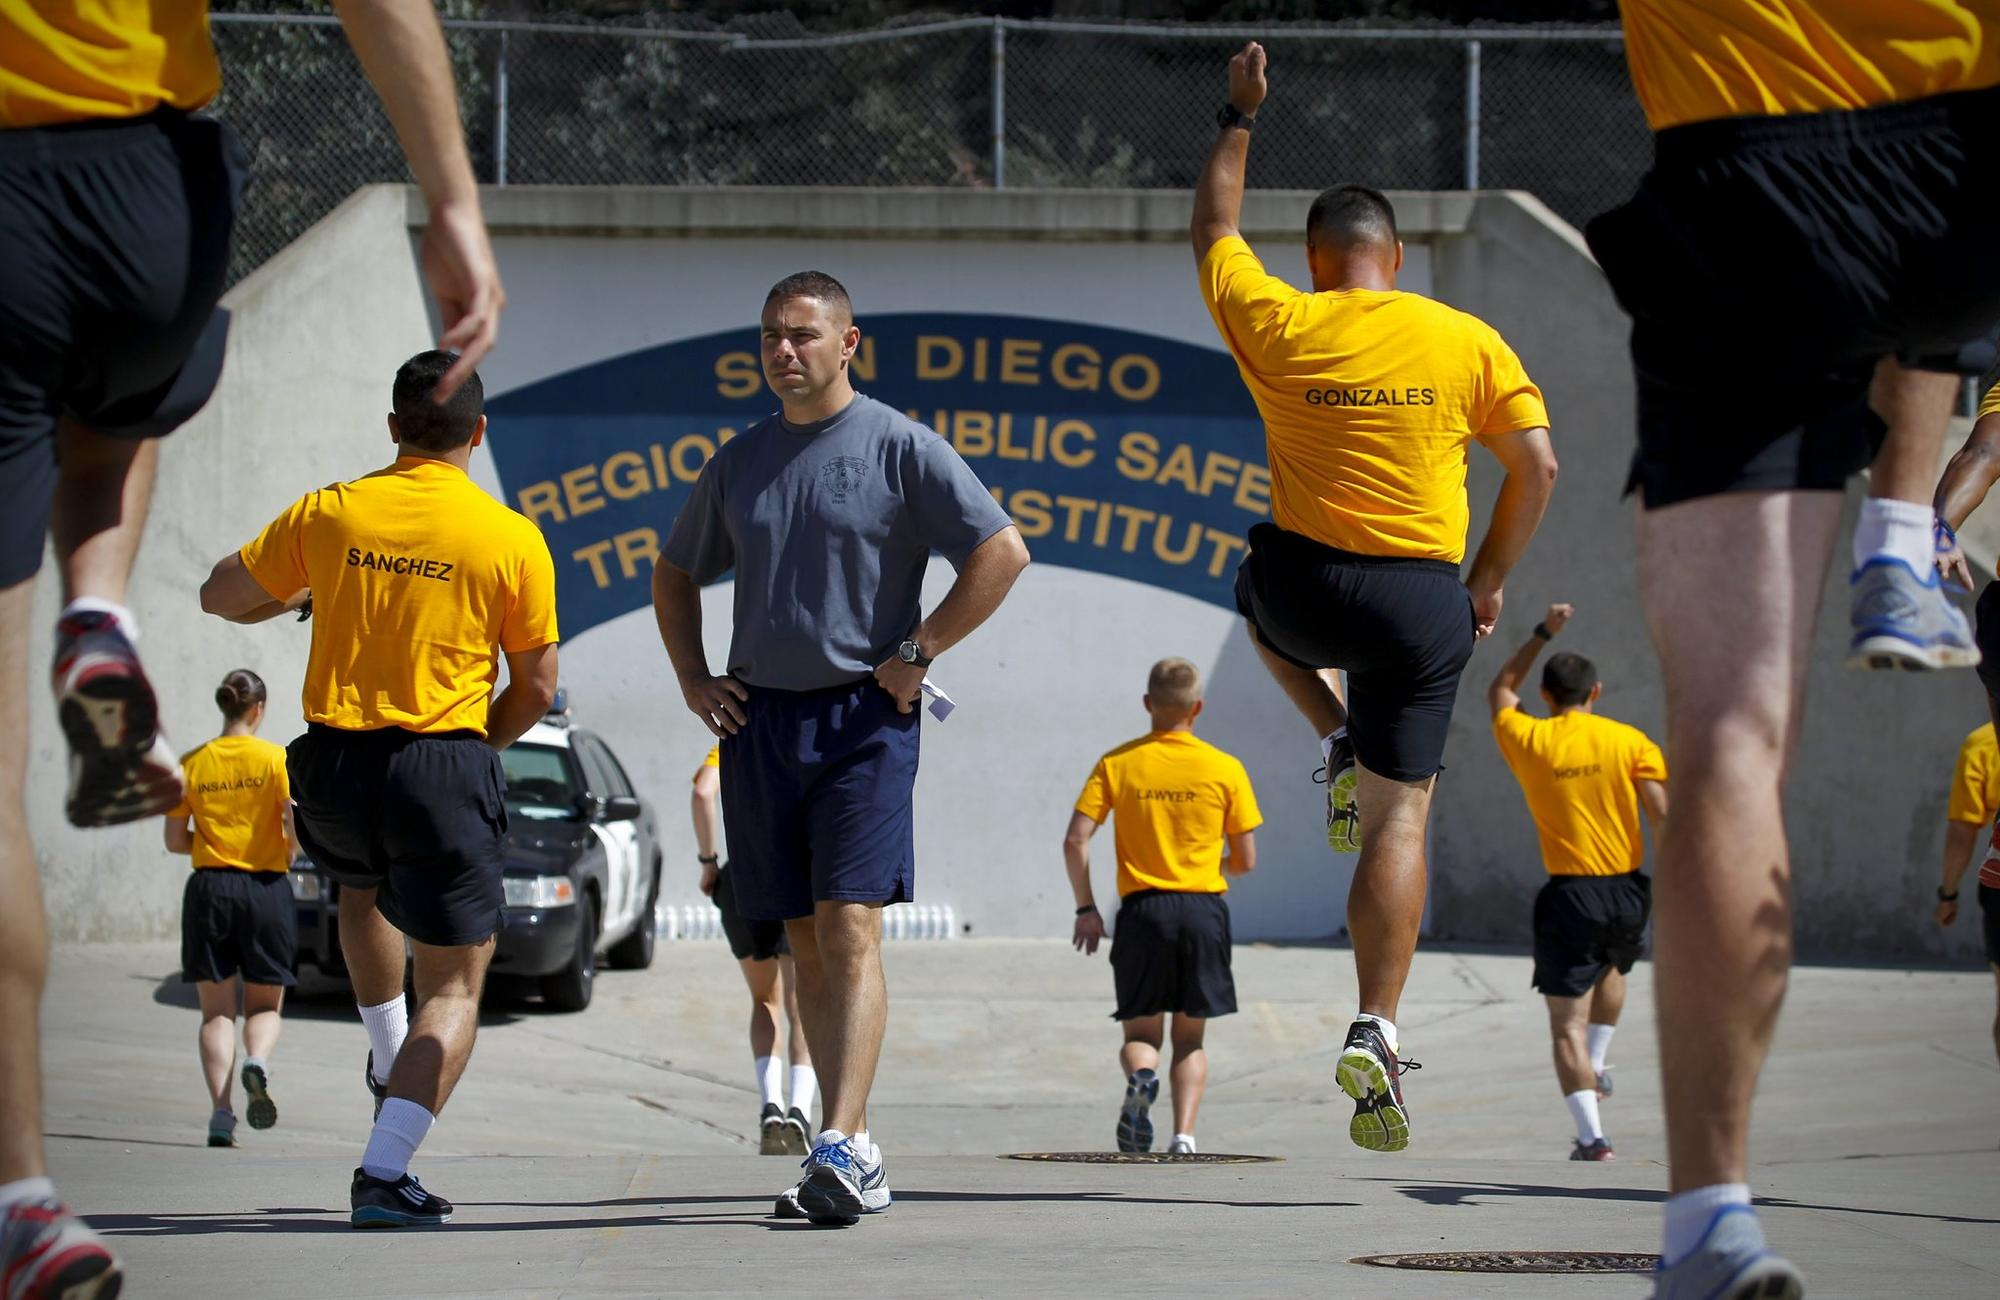 Geoff DeCesari, recruit training officer at the San Diego Regional Public Safety Training Institute in Mira Mesa at Miramar College, watches San Diego police and sheriff's recrui